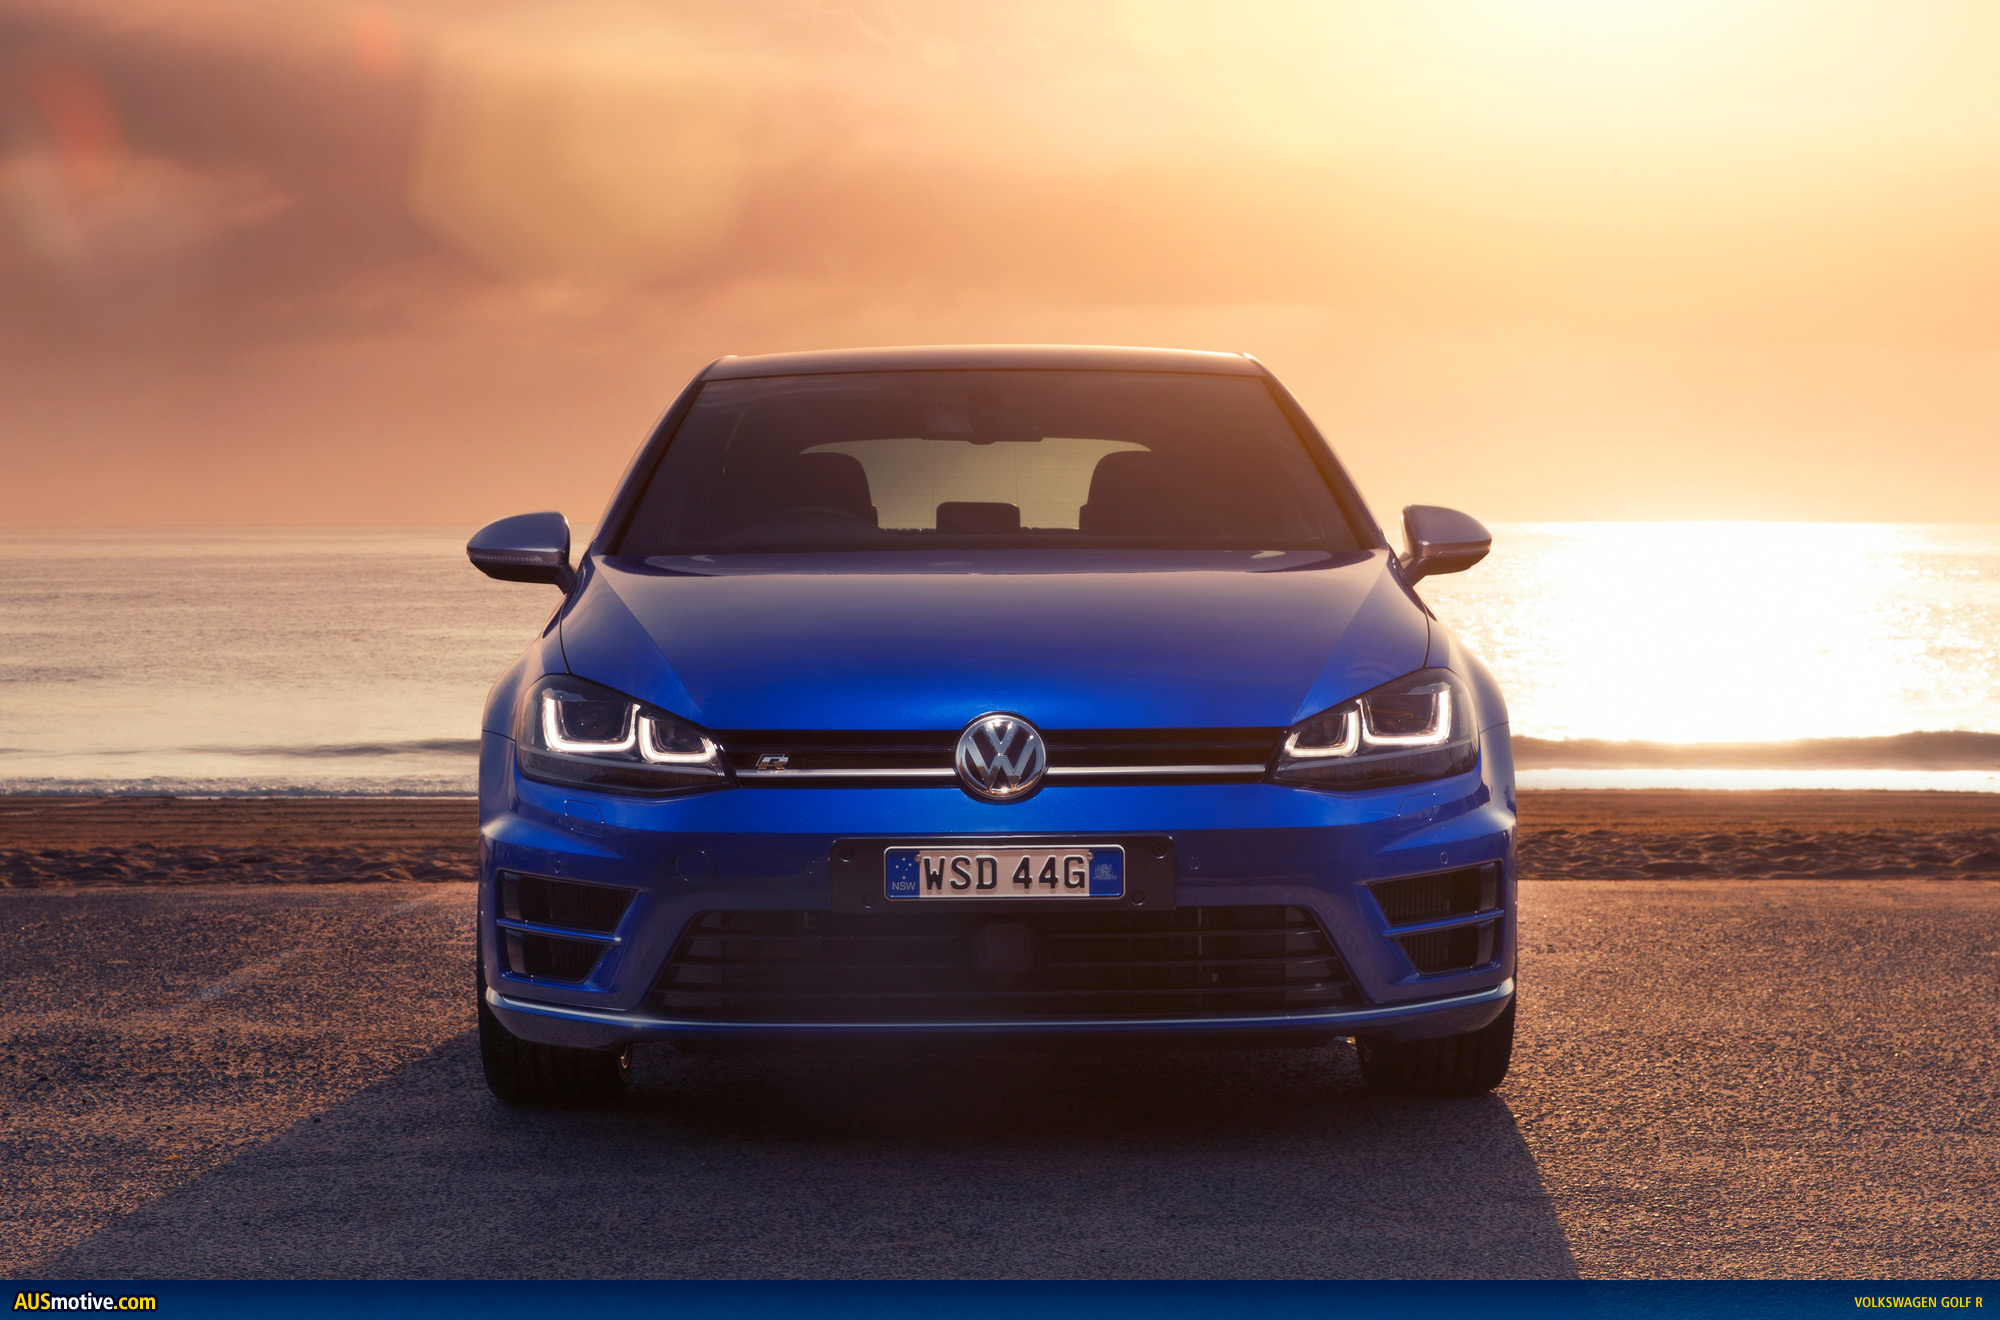 AUSmotive.com » 2014 Volkswagen Golf R – Australian pricing & specs